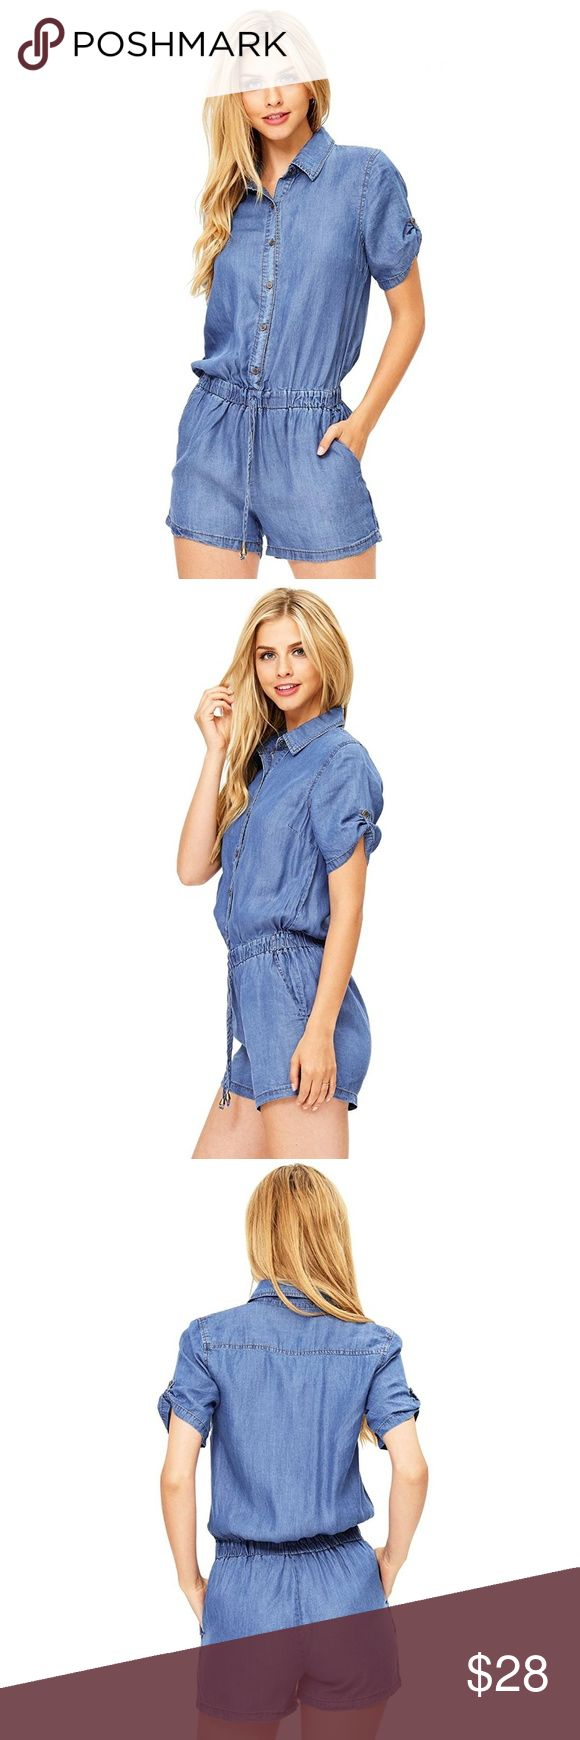 """Women's Juniors Short Sleeve Denim Romper One piece chambrayromper withshort sleevesbutton up top. Drawstring waist on theshorts with pockets at the sides.  Features  One piece chambrayromper withshort sleevesbutton up top. Drawstring waist on theshorts with pockets at the sides. Machine Wash Cold 100% Tencel 30.5 in /78 cm Top to Bottom; 2.75""""/7 cm Inseam (Model is 5'7 and wearing a Size Small) Designed in Los Angeles, California Jeans Overalls"""